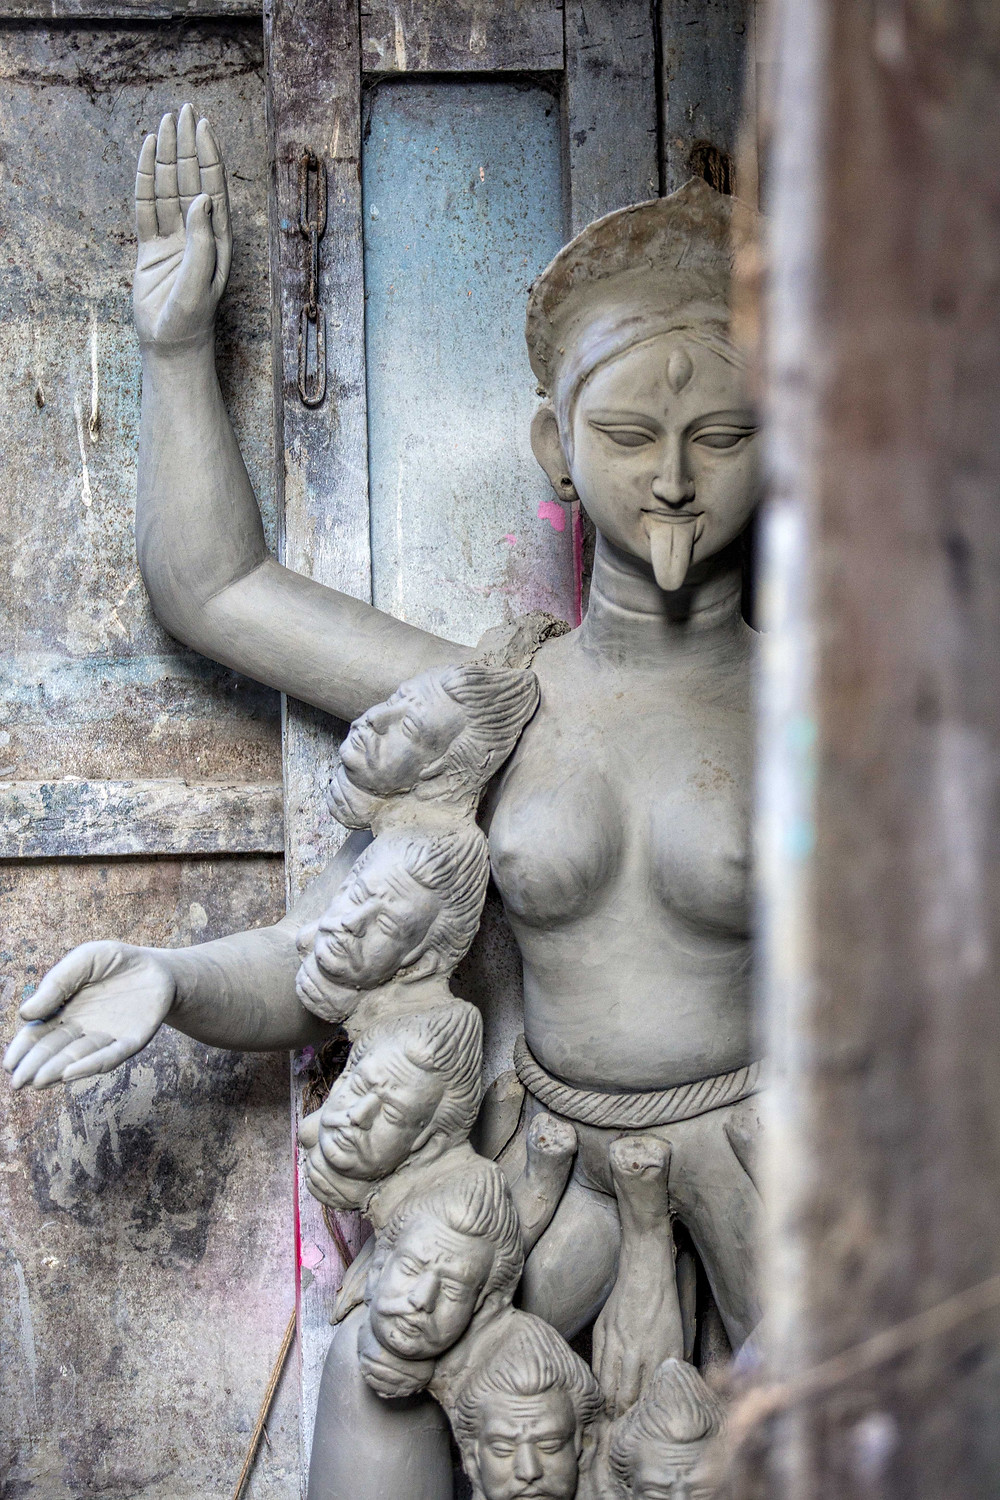 Making of idols at Kumartuli